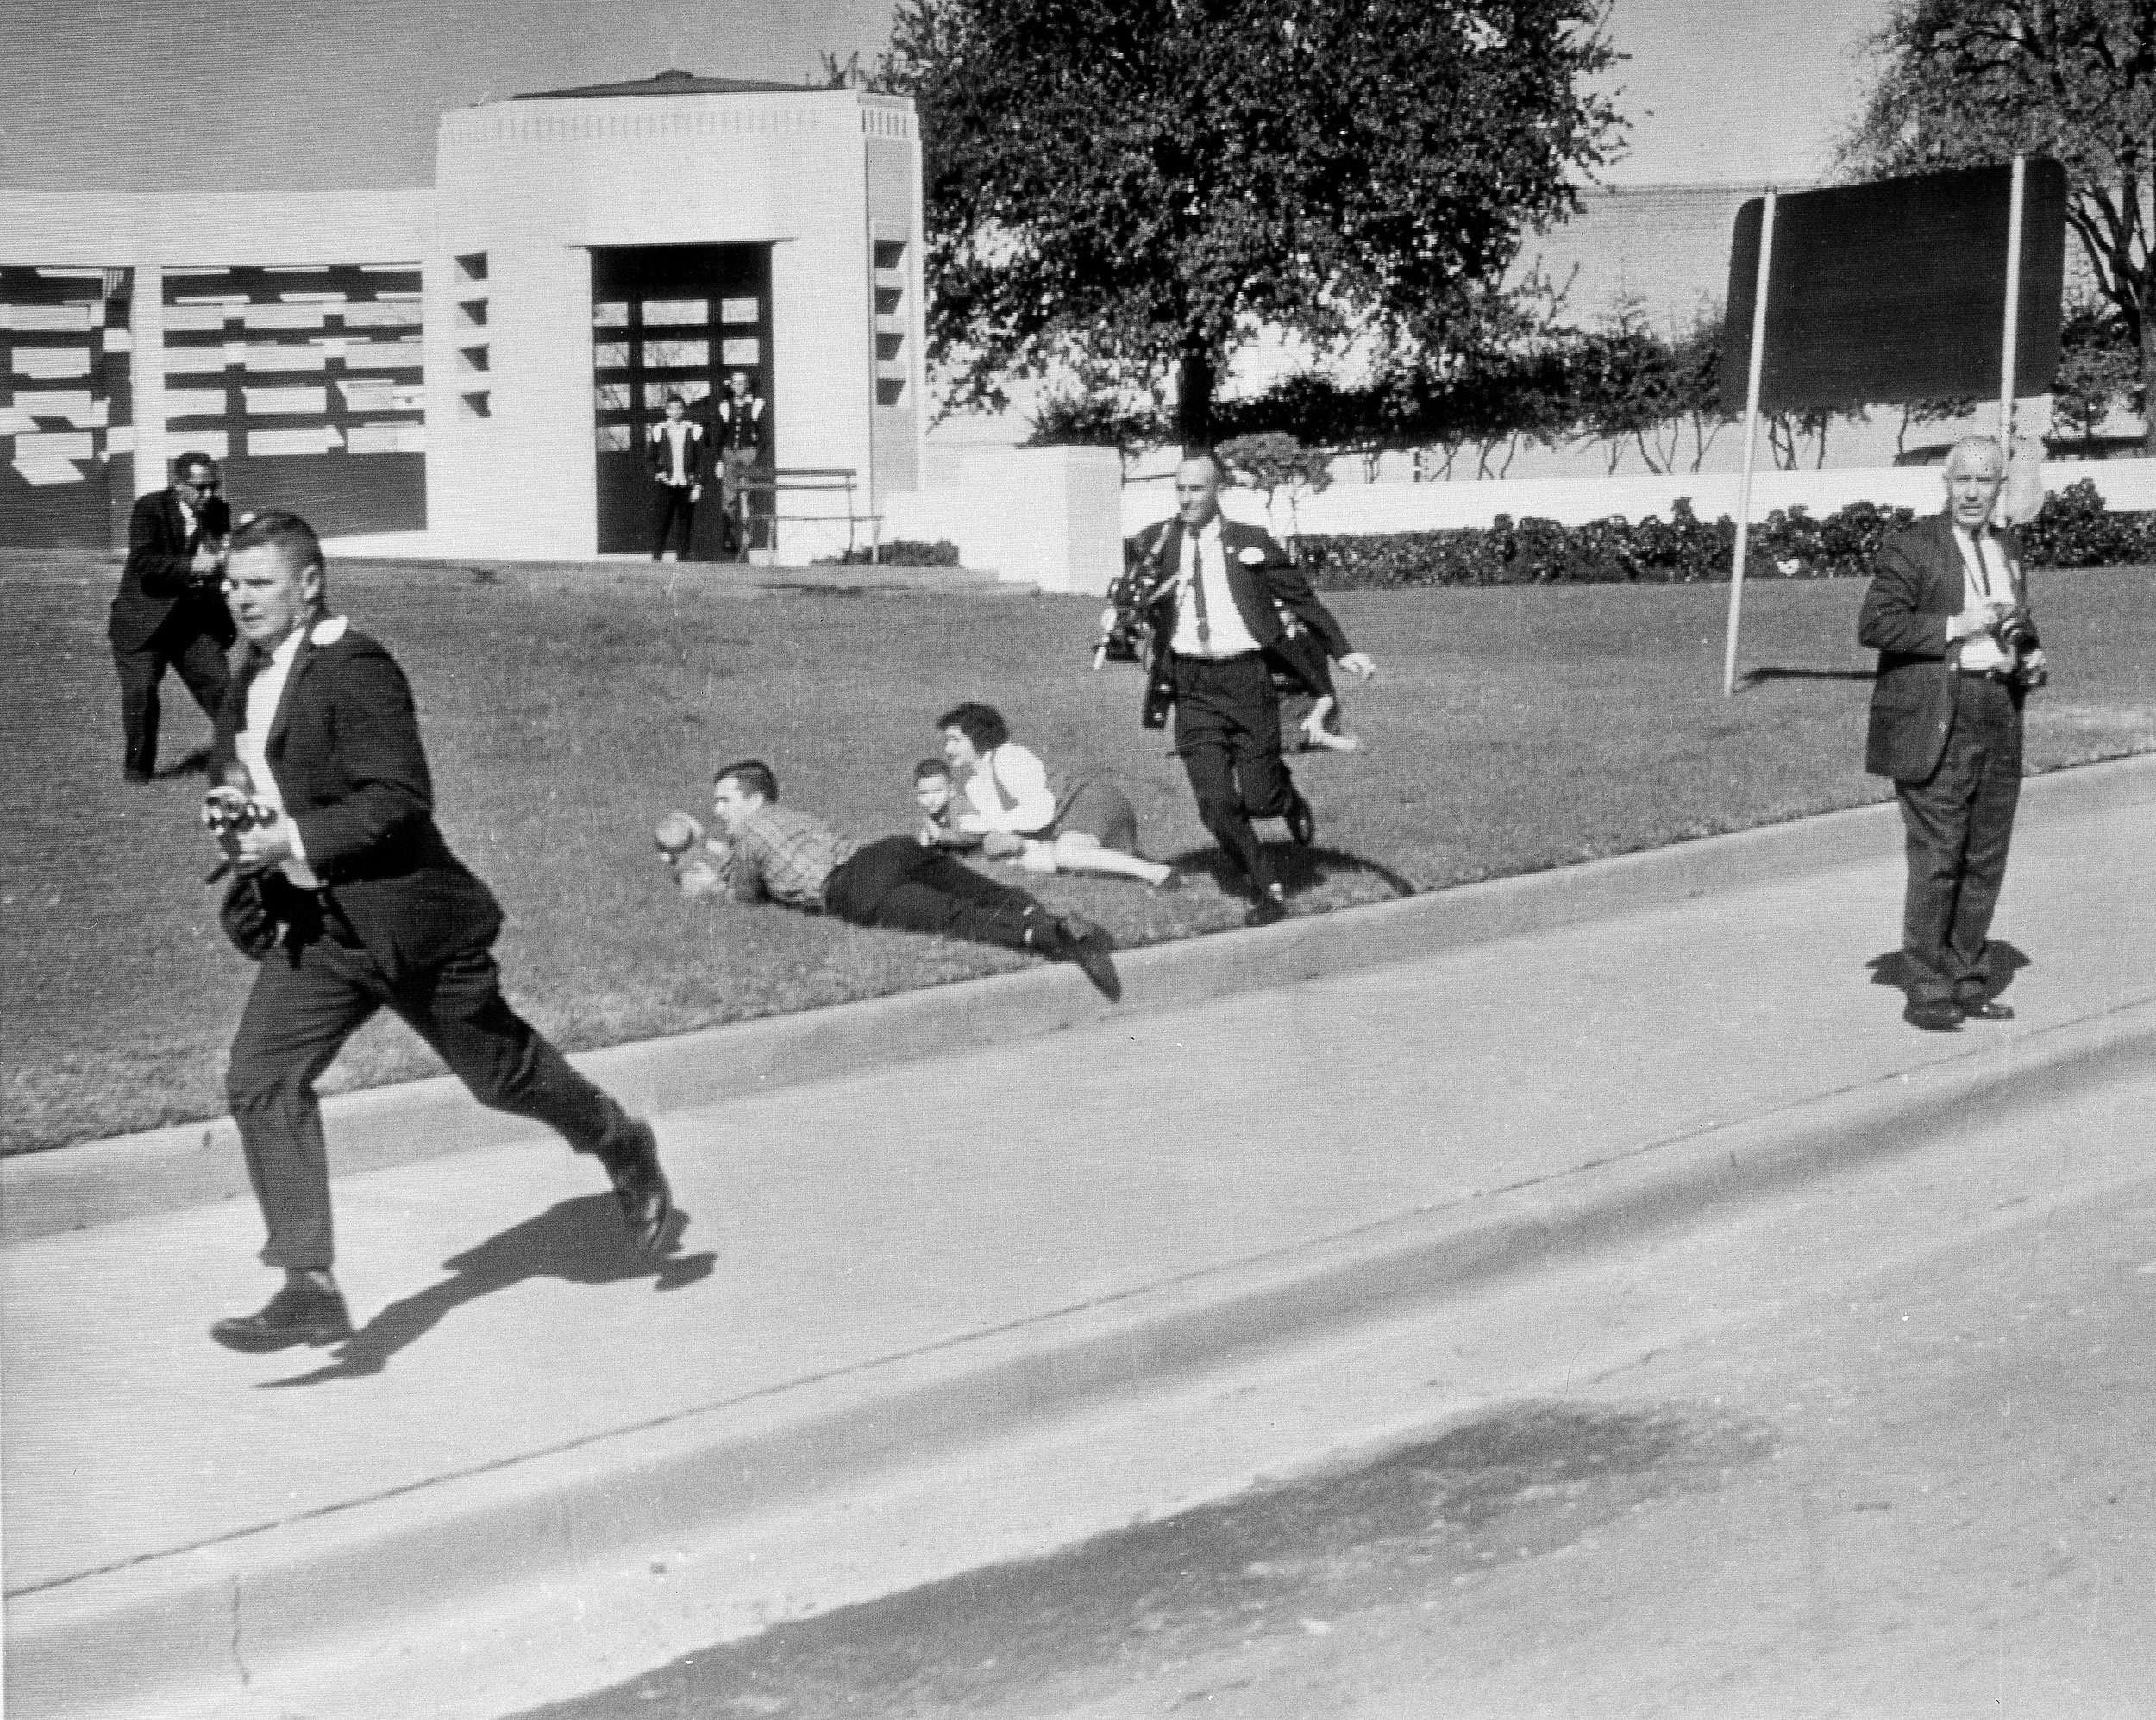 JFK Assassination: The Day the President Was Shot